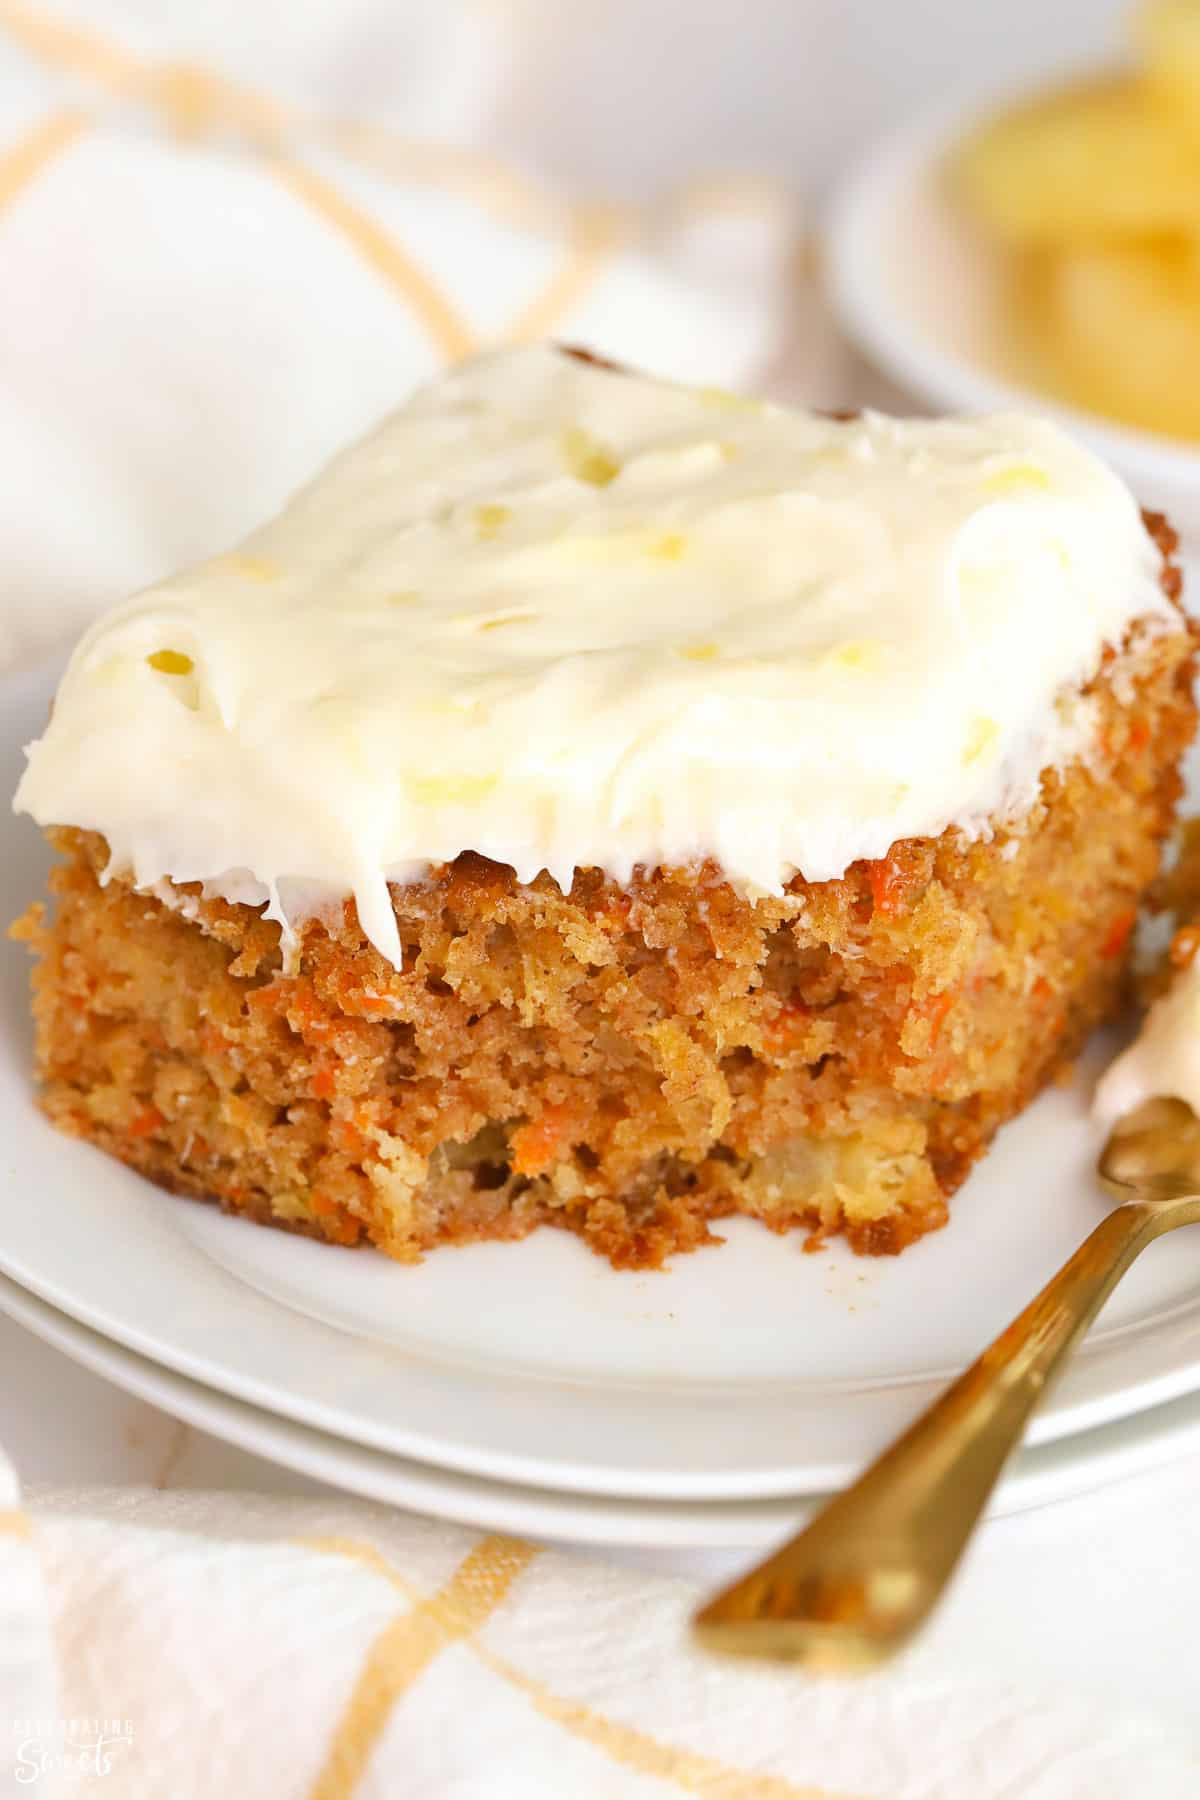 Slice of Pineapple Carrot Cake on a white plate with a gold fork